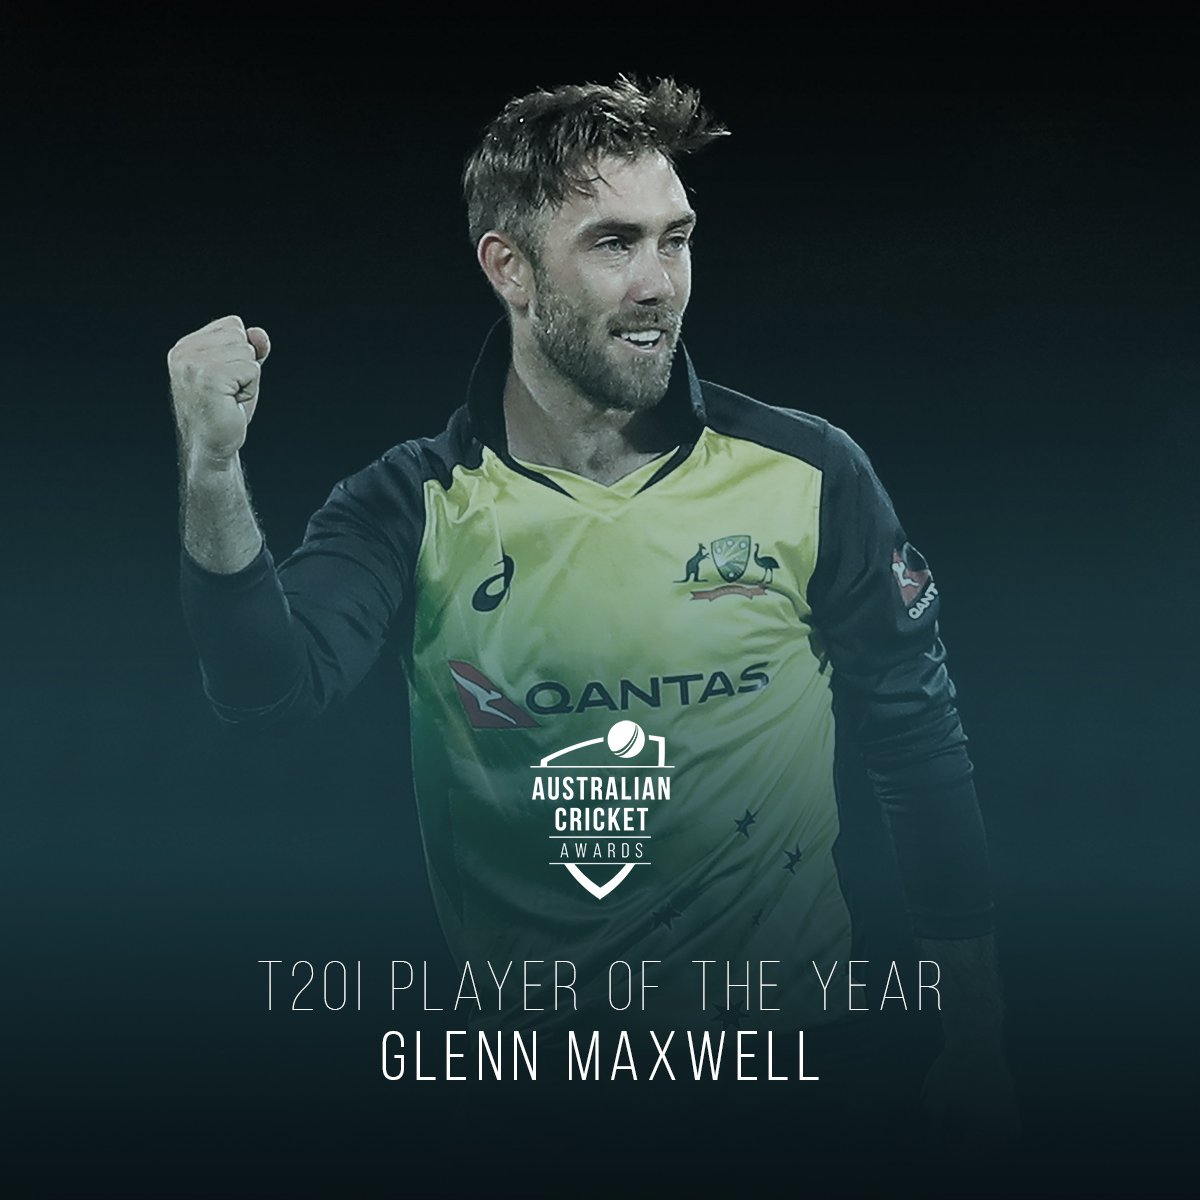 Ever the entertainer, ever the performer.   Glenn Maxwell wraps up an excellent short-form year with the T20I Player of the Year award! #AusCricketAwards <br>http://pic.twitter.com/ZiwnZJeIUe